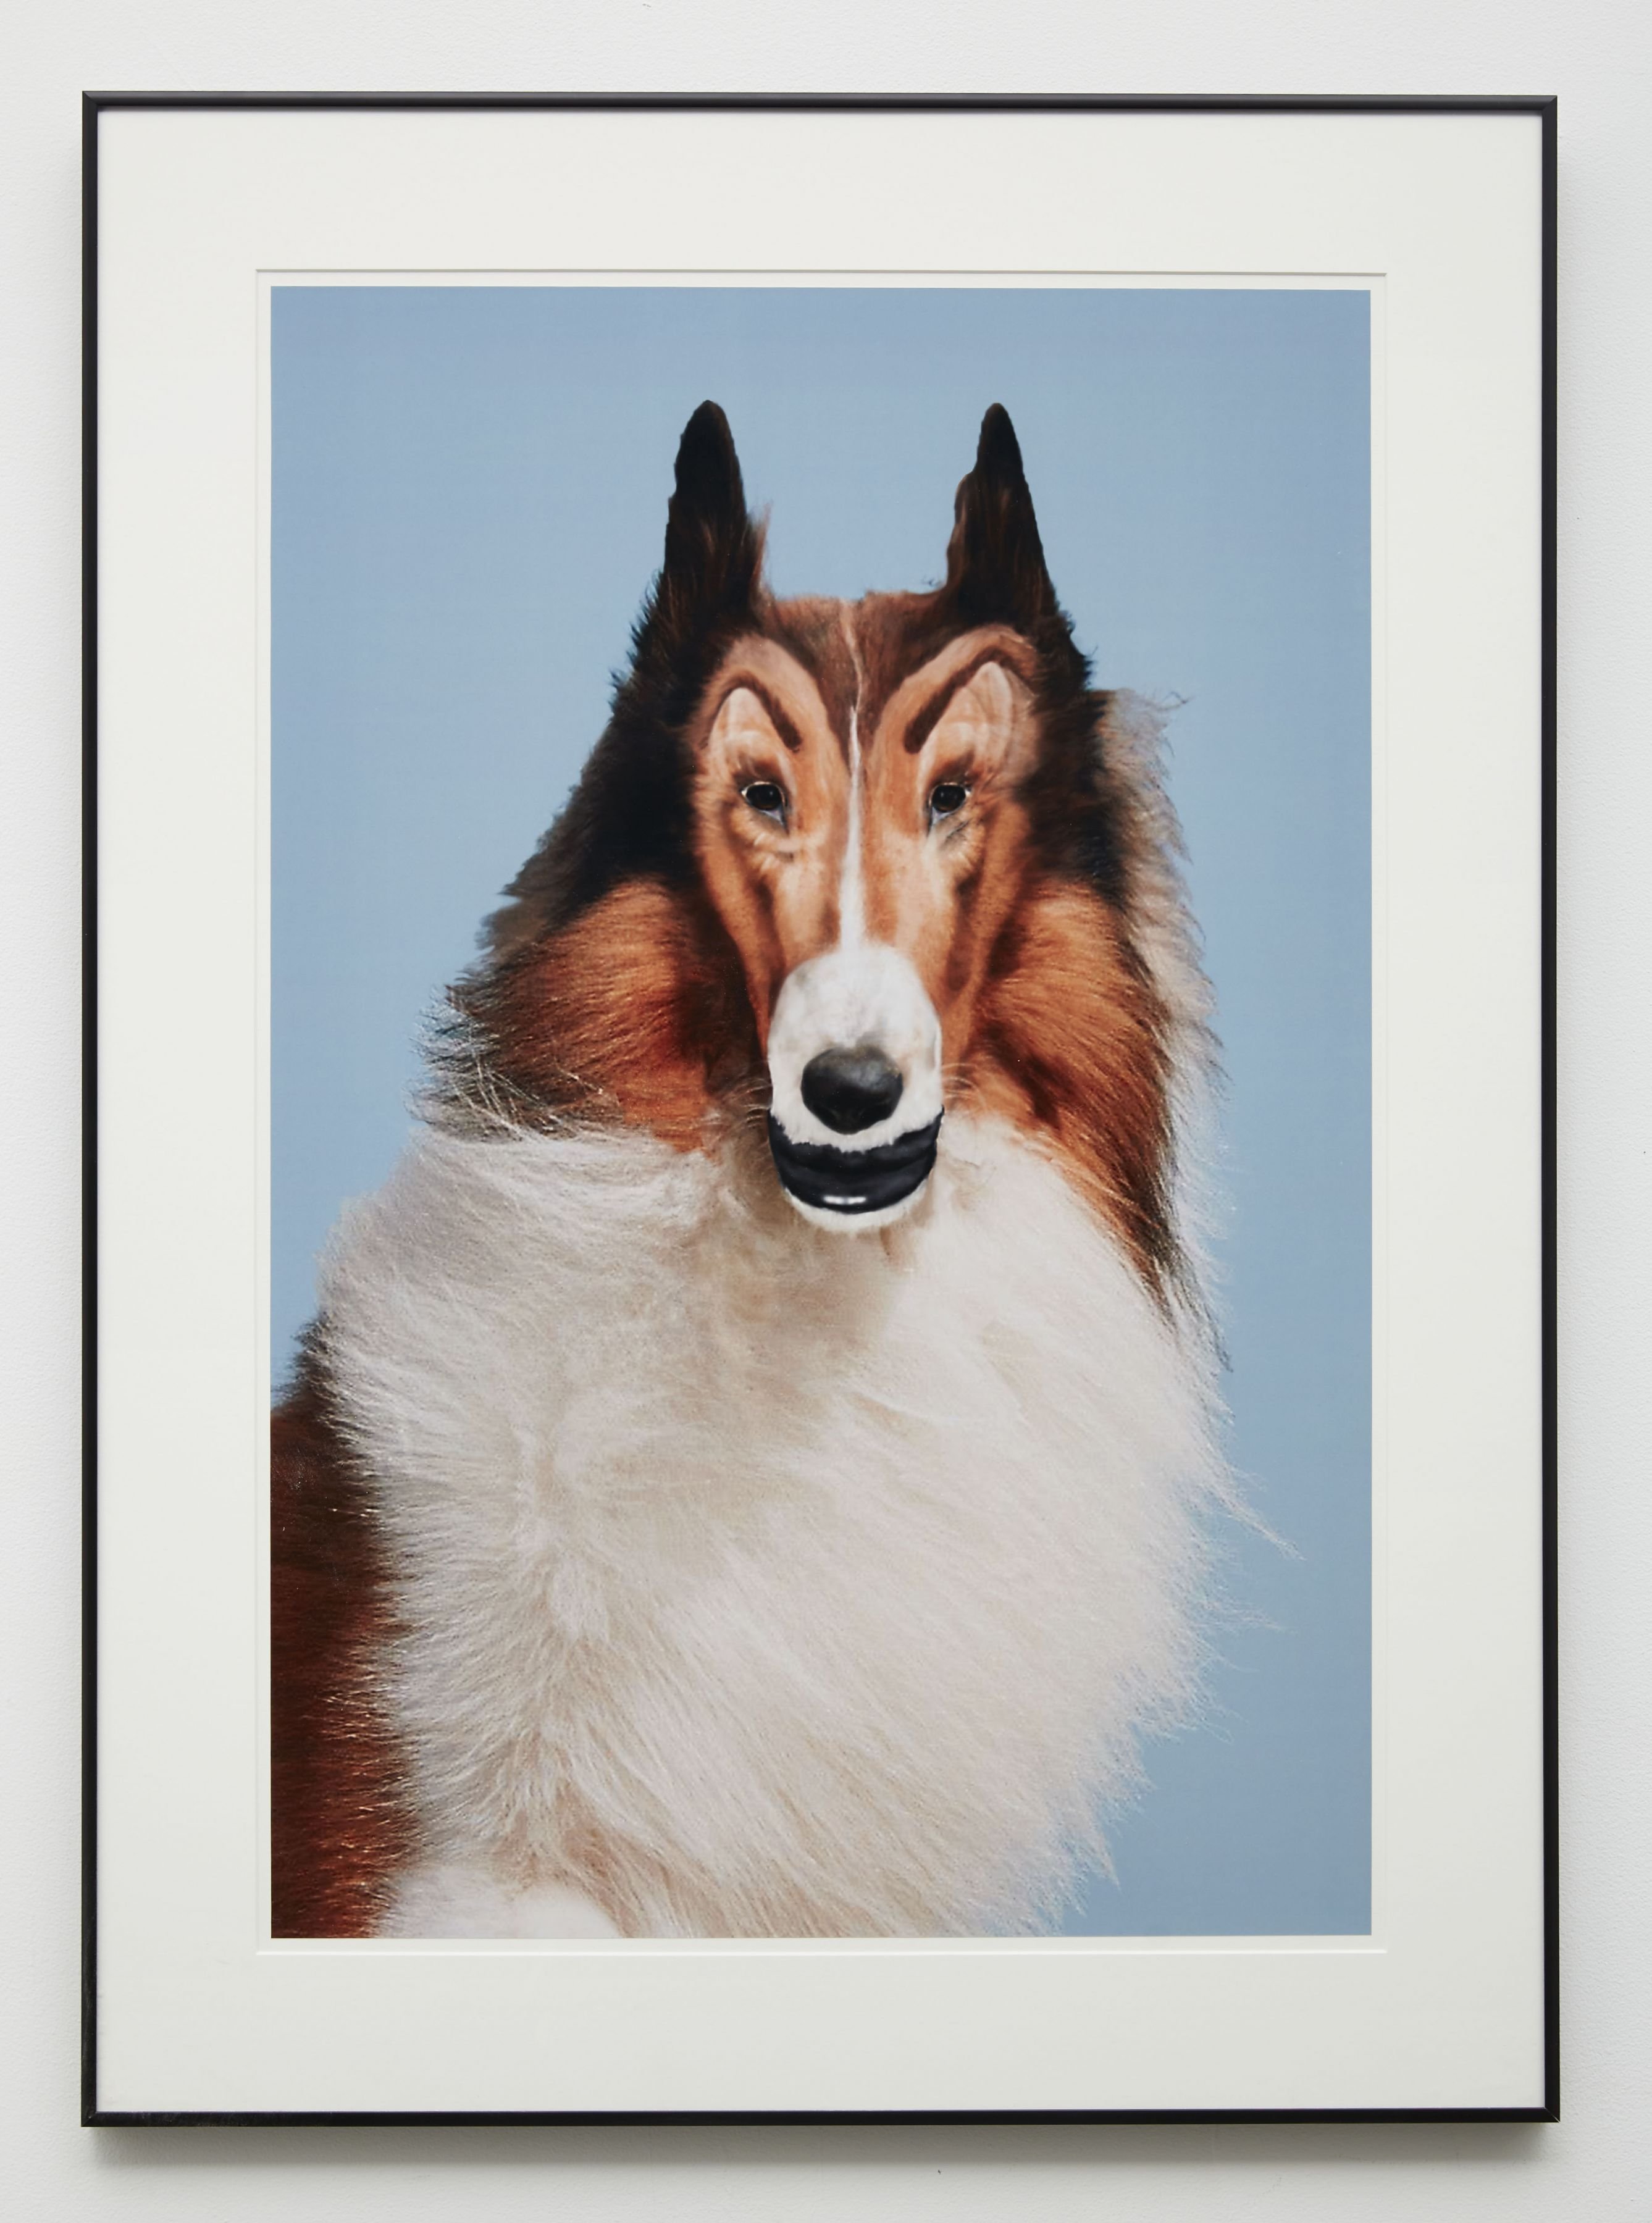 an edited photograph of Lassie created by Baltimore-based artist John Waters